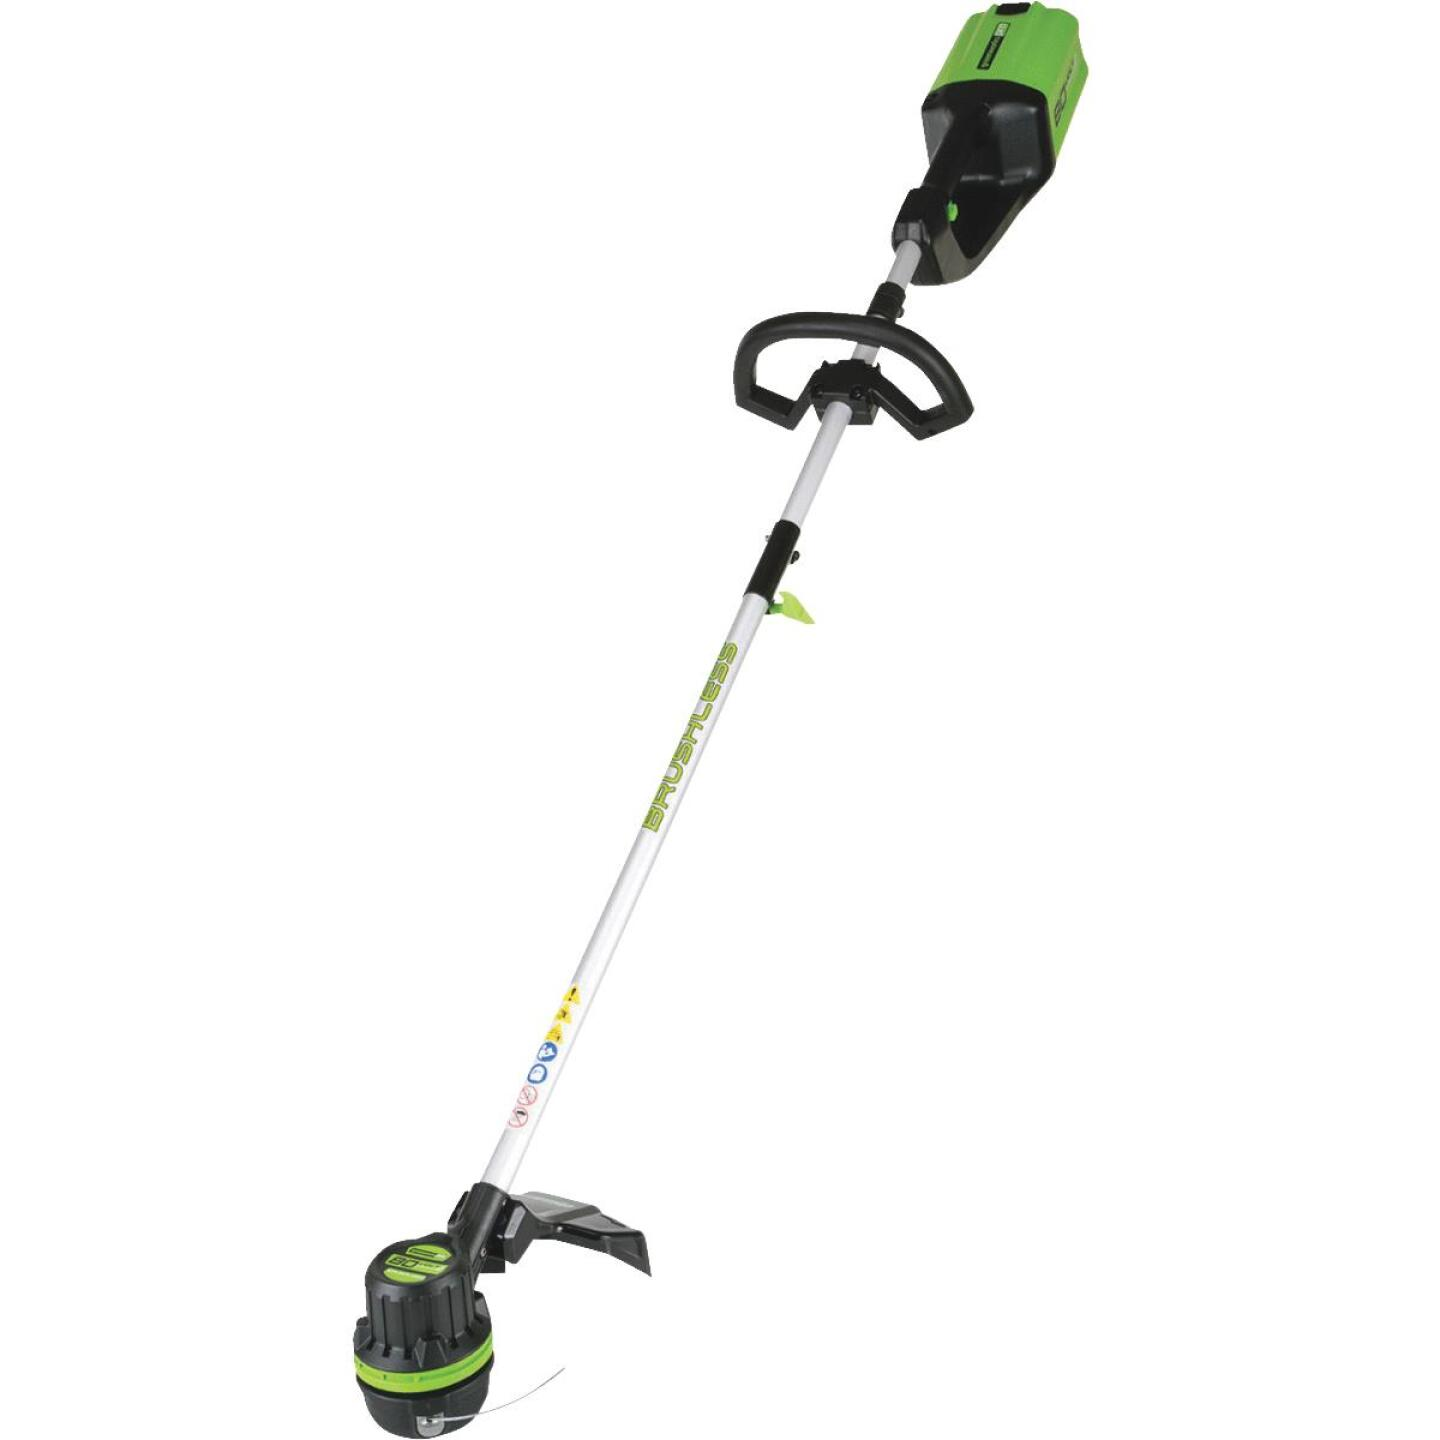 Greenworks Pro 80V 16 In. DigiPro Lithium Ion Straight Cordless String Trimmer Image 1